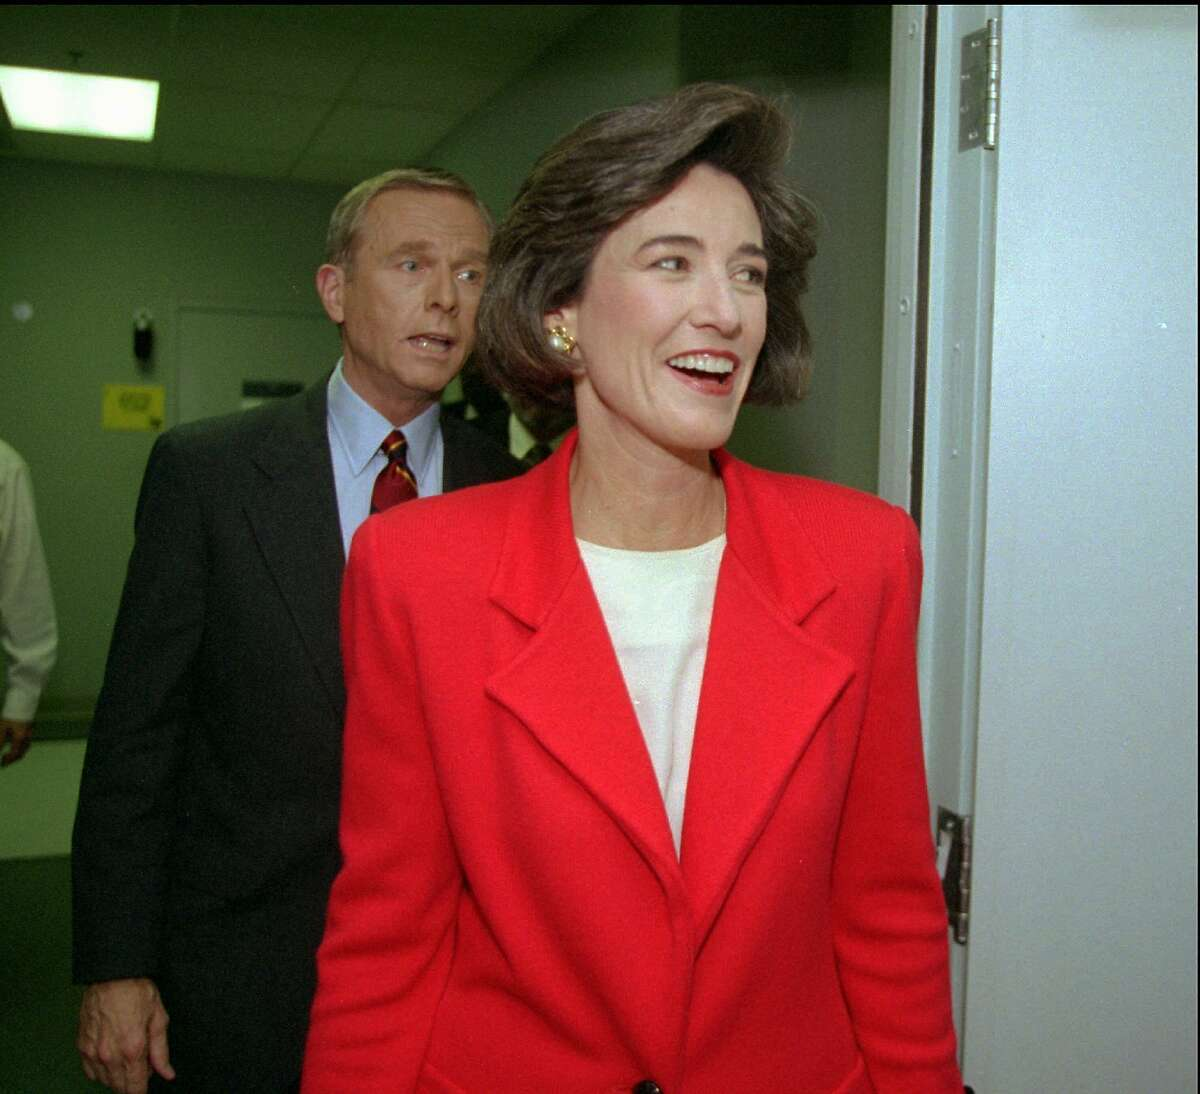 Democratic gubernatorial candidate Kathleen Brown, right, and Republican Gov. Pete Wilson leave a Sacramento, Calif., television studio Friday, Oct. 14, 1994, after finishing their only planned debate. (AP Photo/George Nikitin)